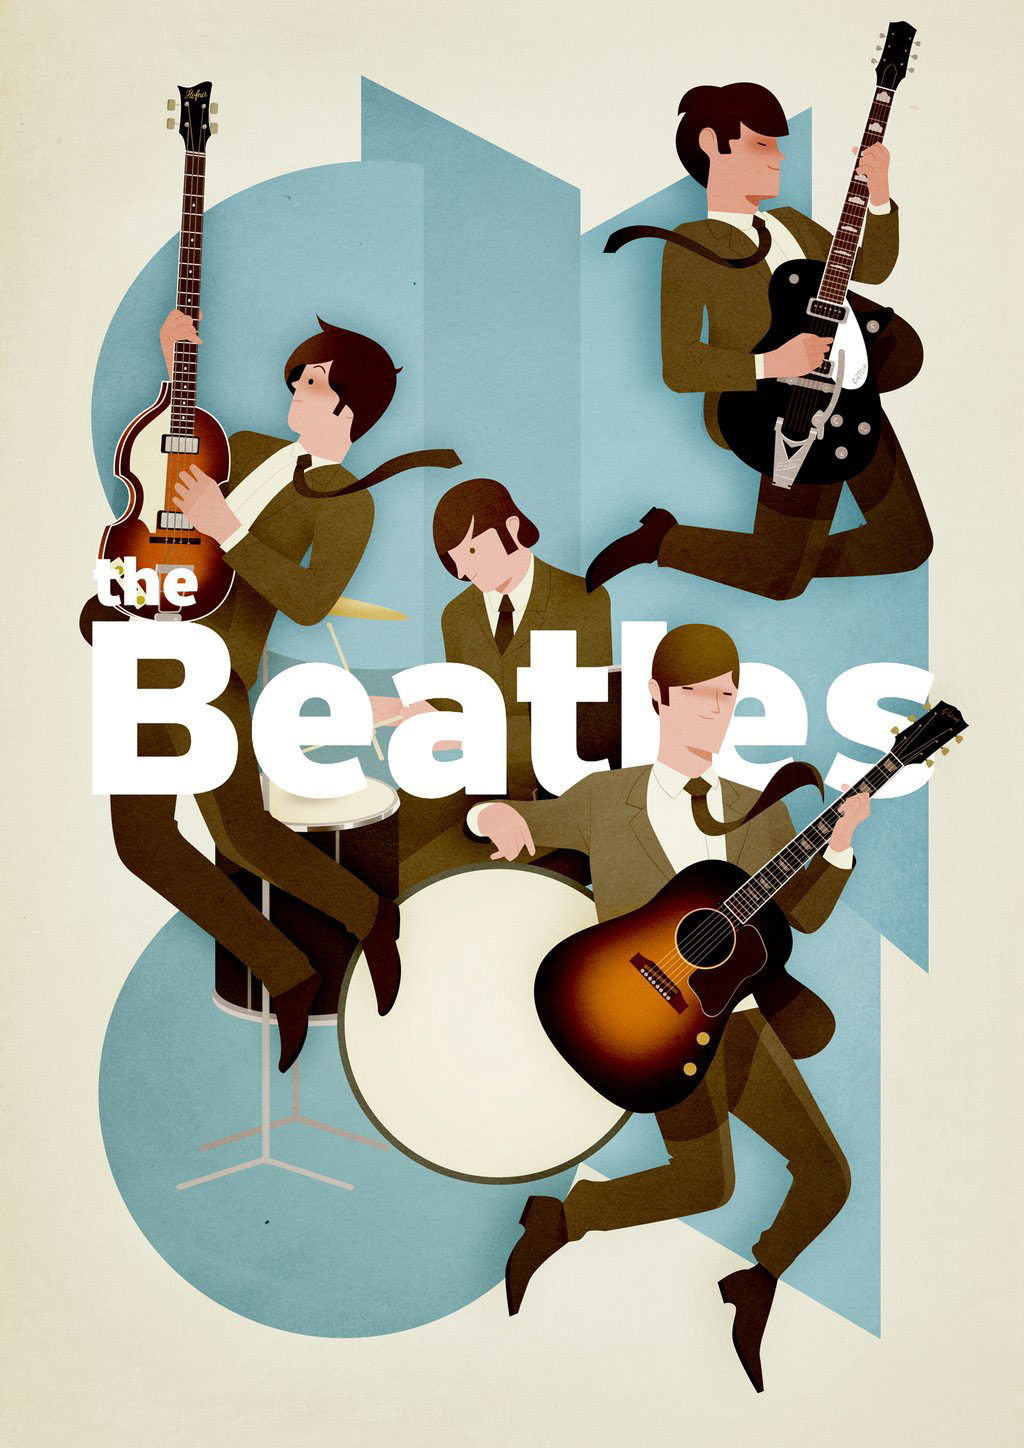 The Beatles by Andrew Lyons